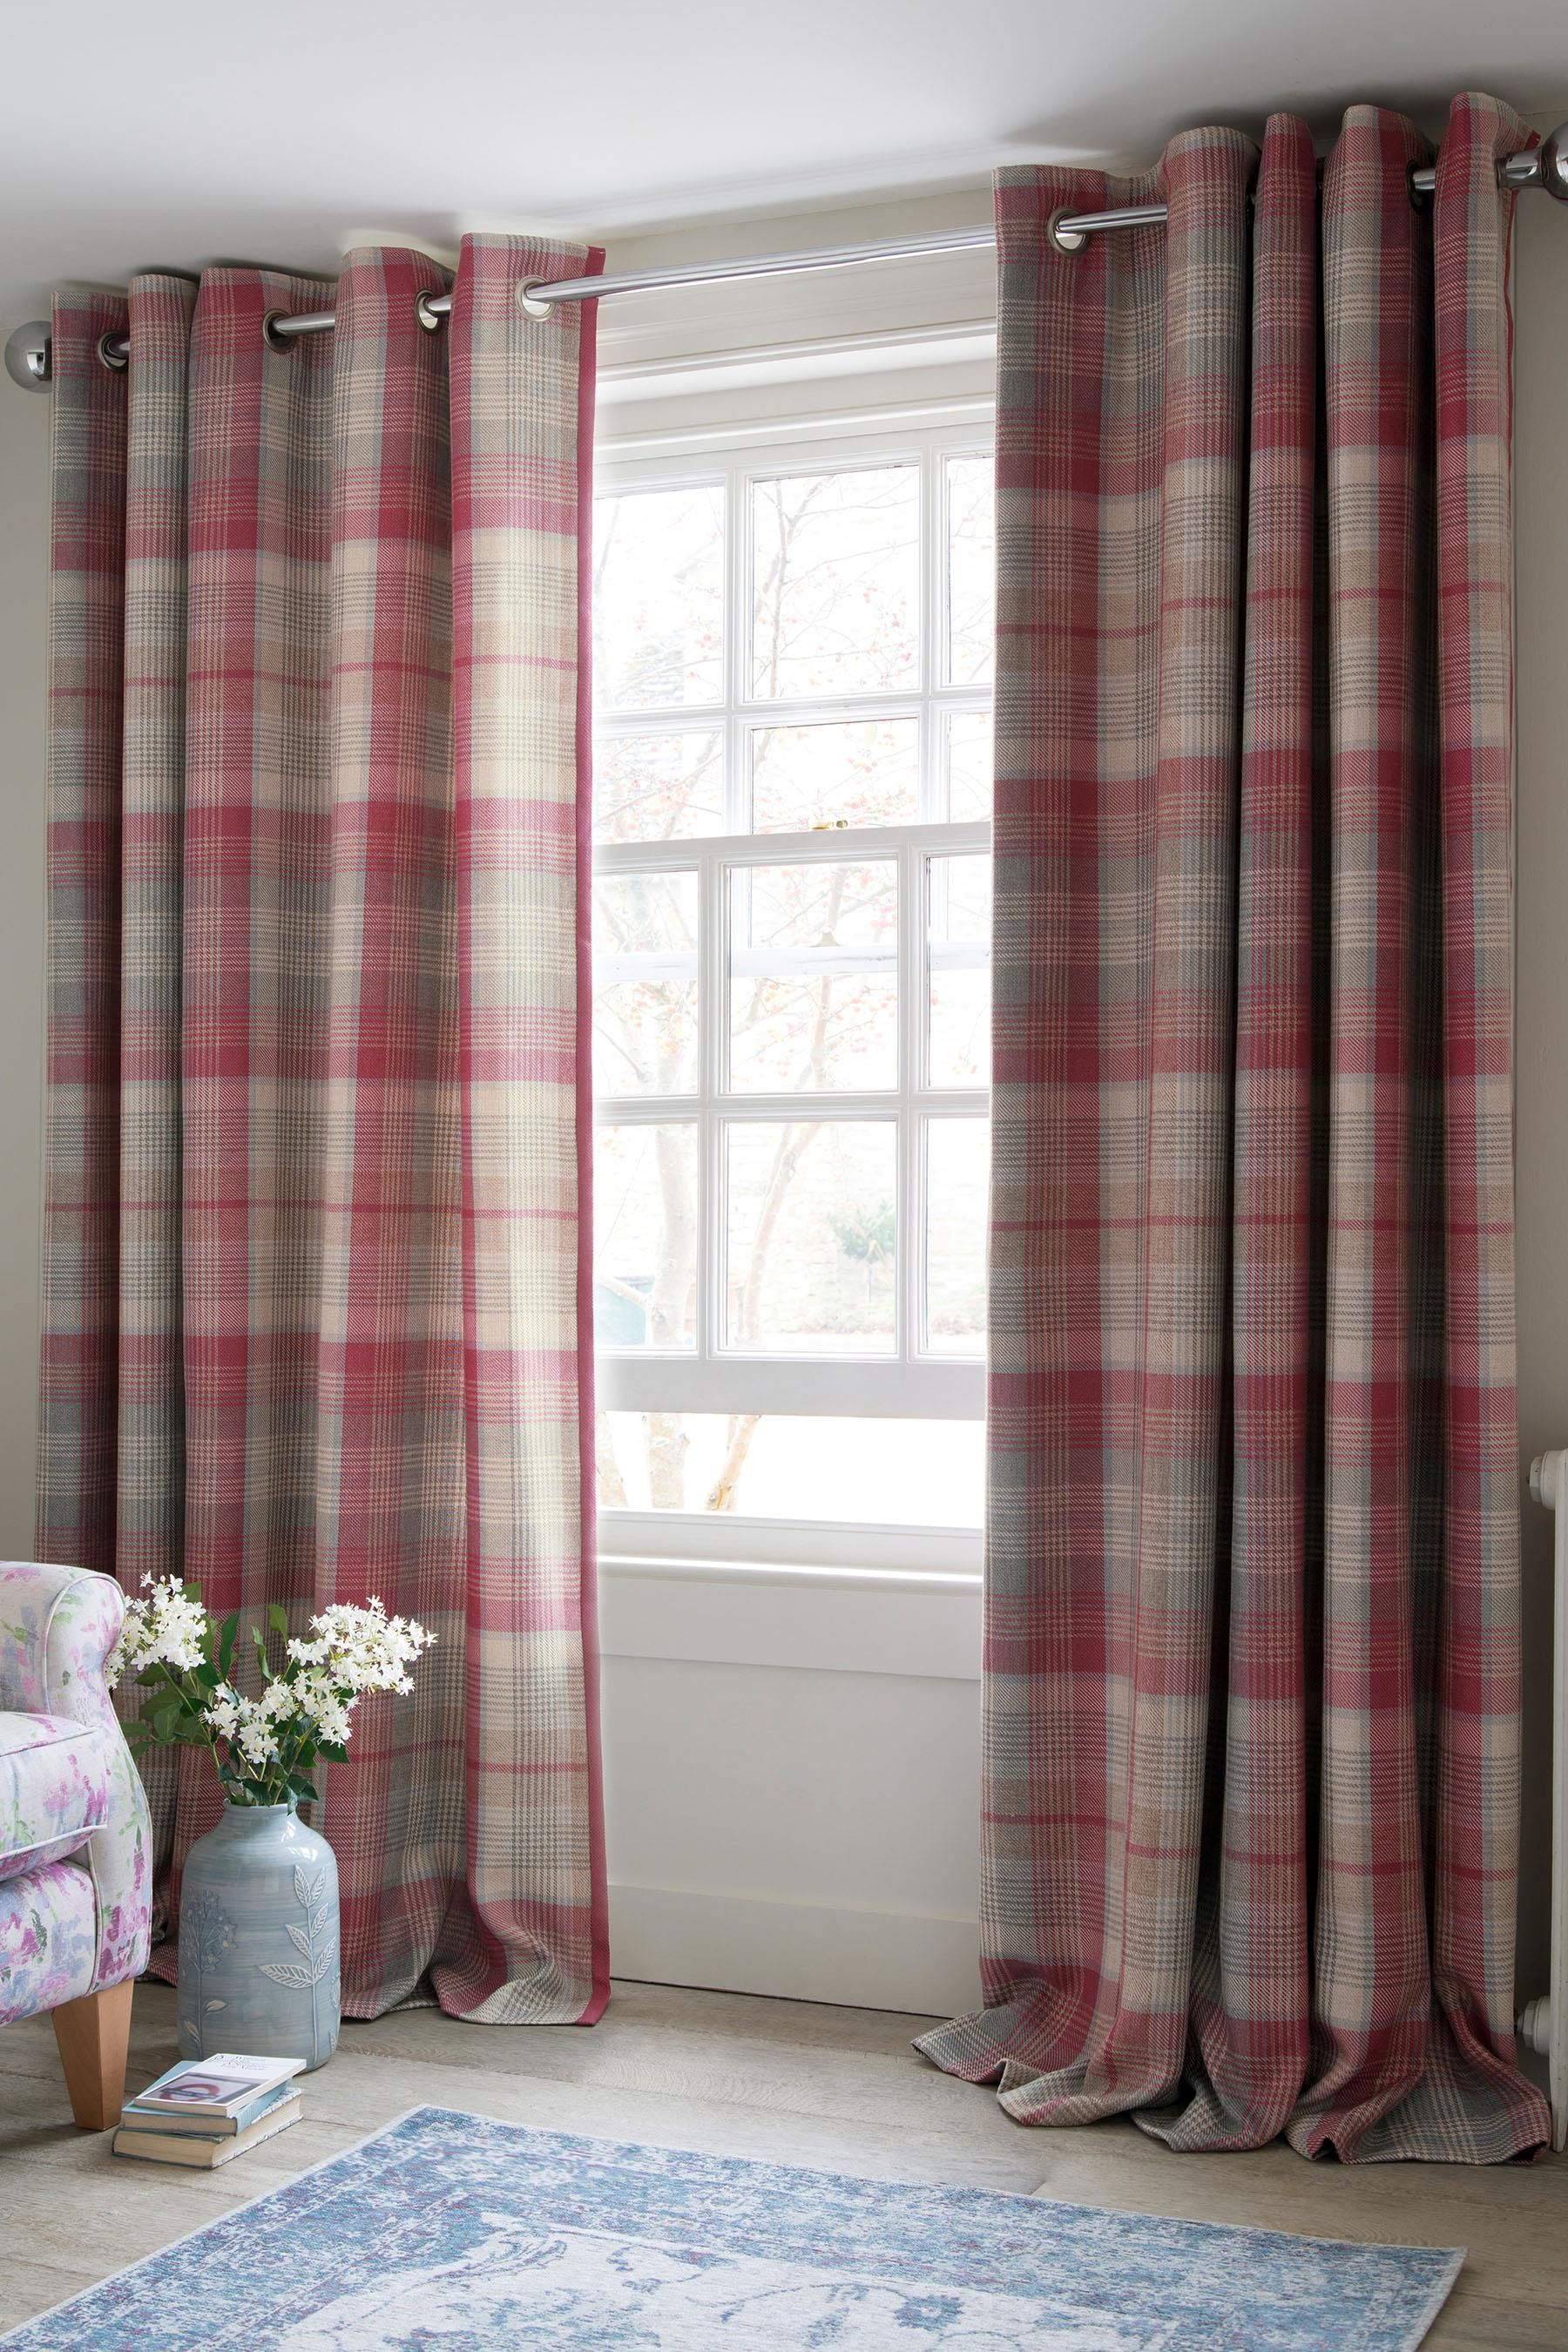 Buy Raspberry Woven Check Milton Eyelet Curtains From The Next UK Online Shop